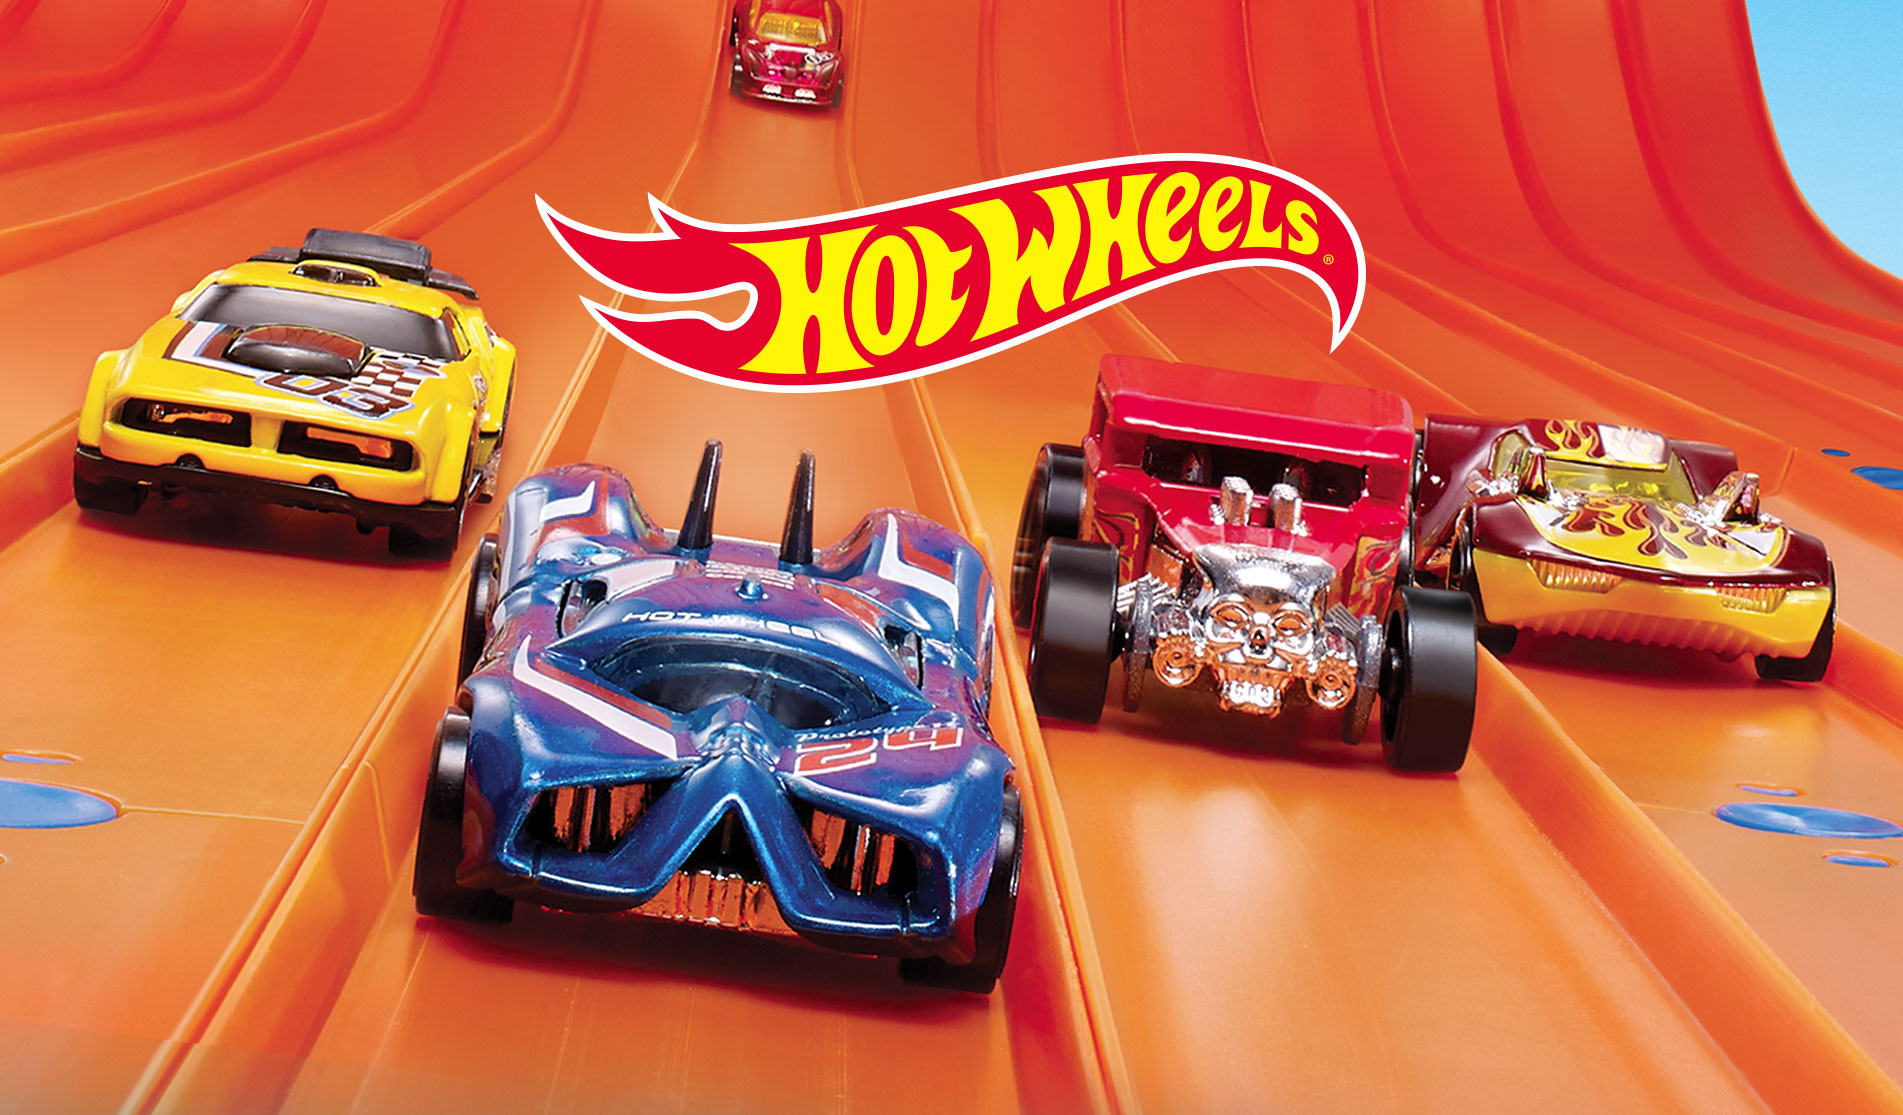 Hot Wheels Fotos ~ Le migliori Piste Hot Wheels Qual u00e8 la tua preferita? Nano Bleu